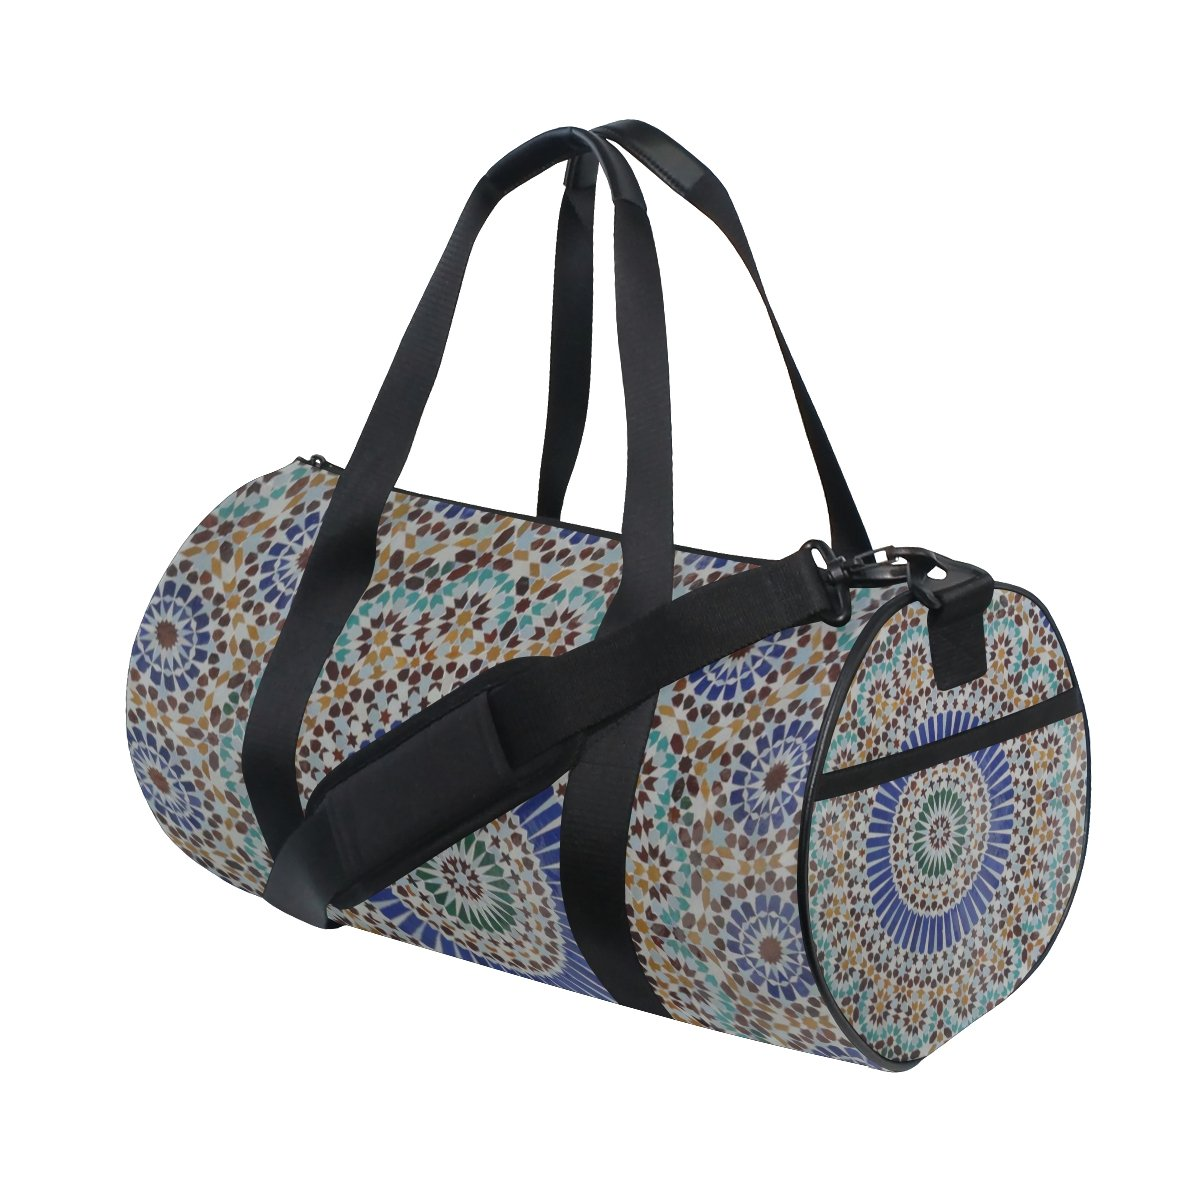 Geometrical Pattern Lightweight Canvas Sports Bag Travel Duffel Yoga Gym Bags